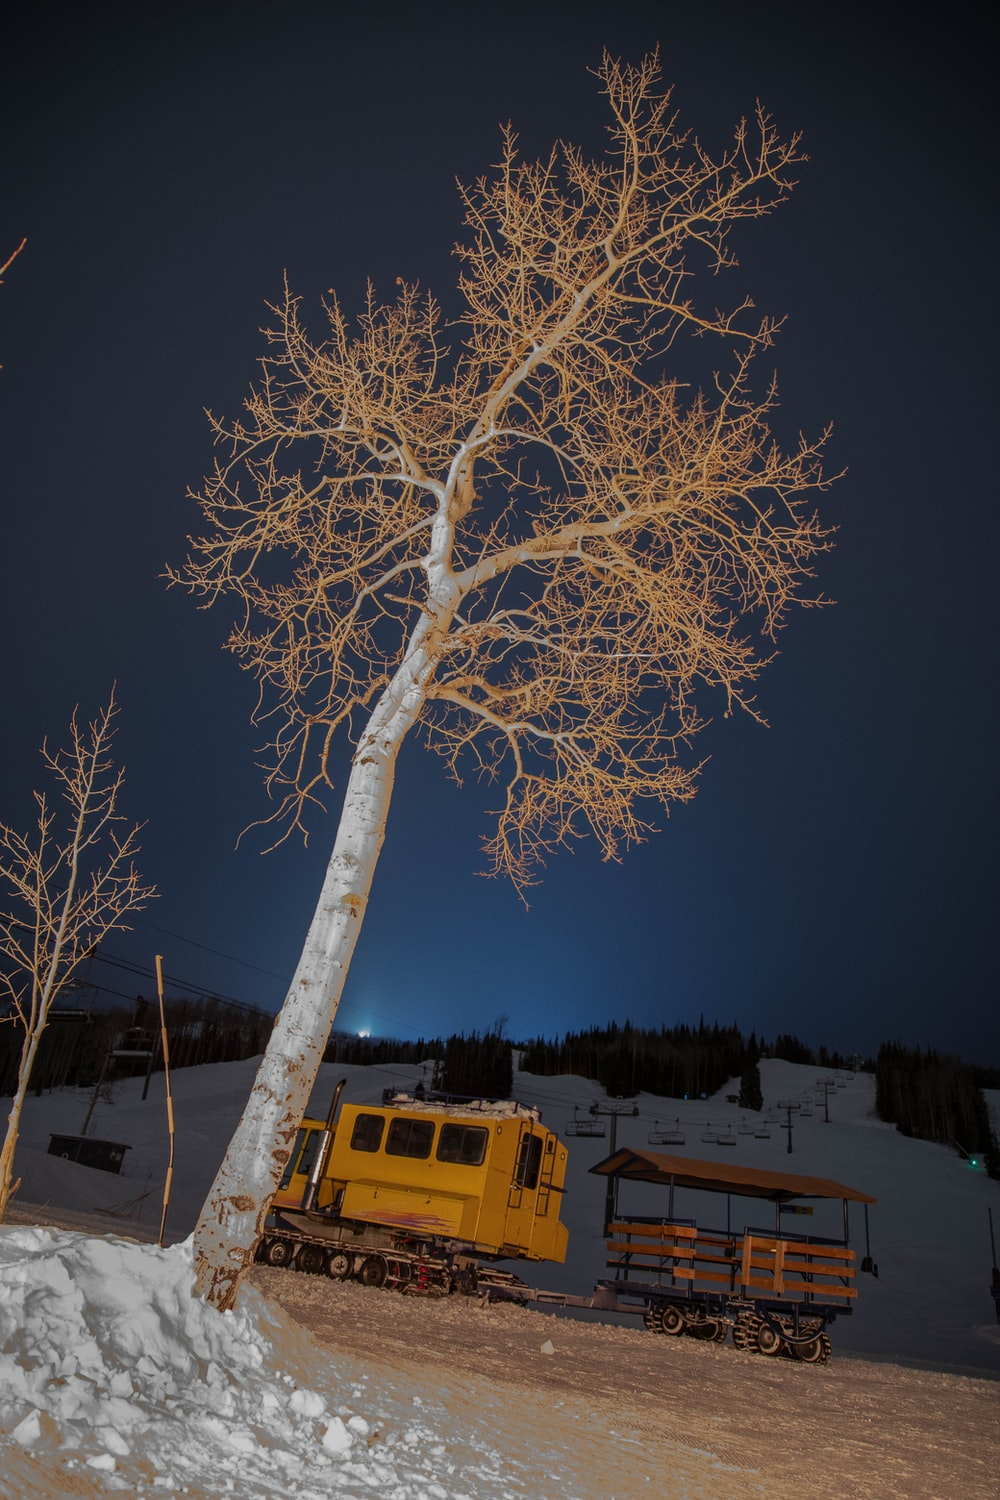 brown tree with white leaves during night time